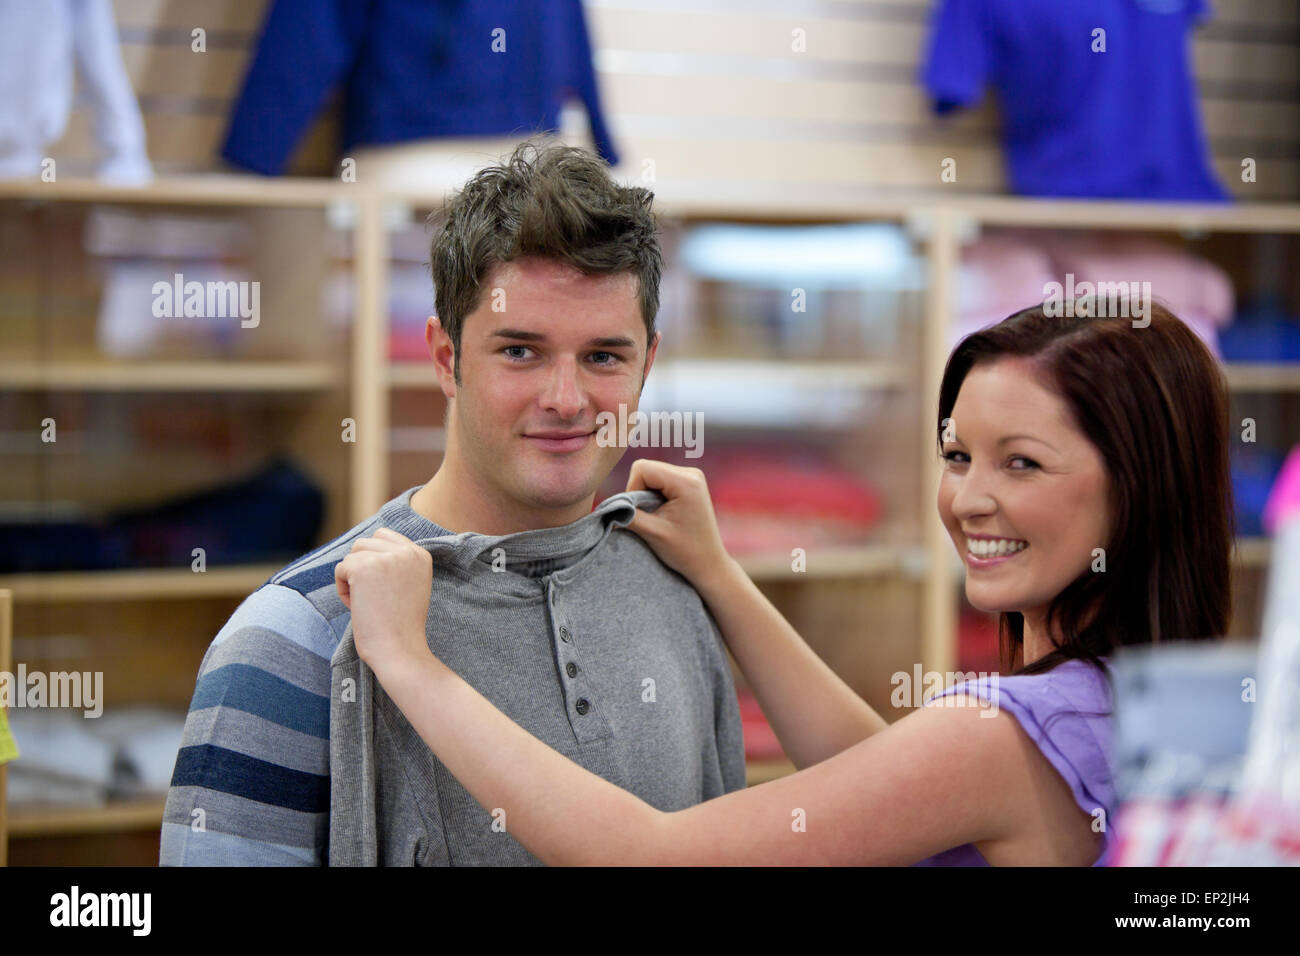 cute woman choosing clothes for her boyfriend in a shop - Stock Image